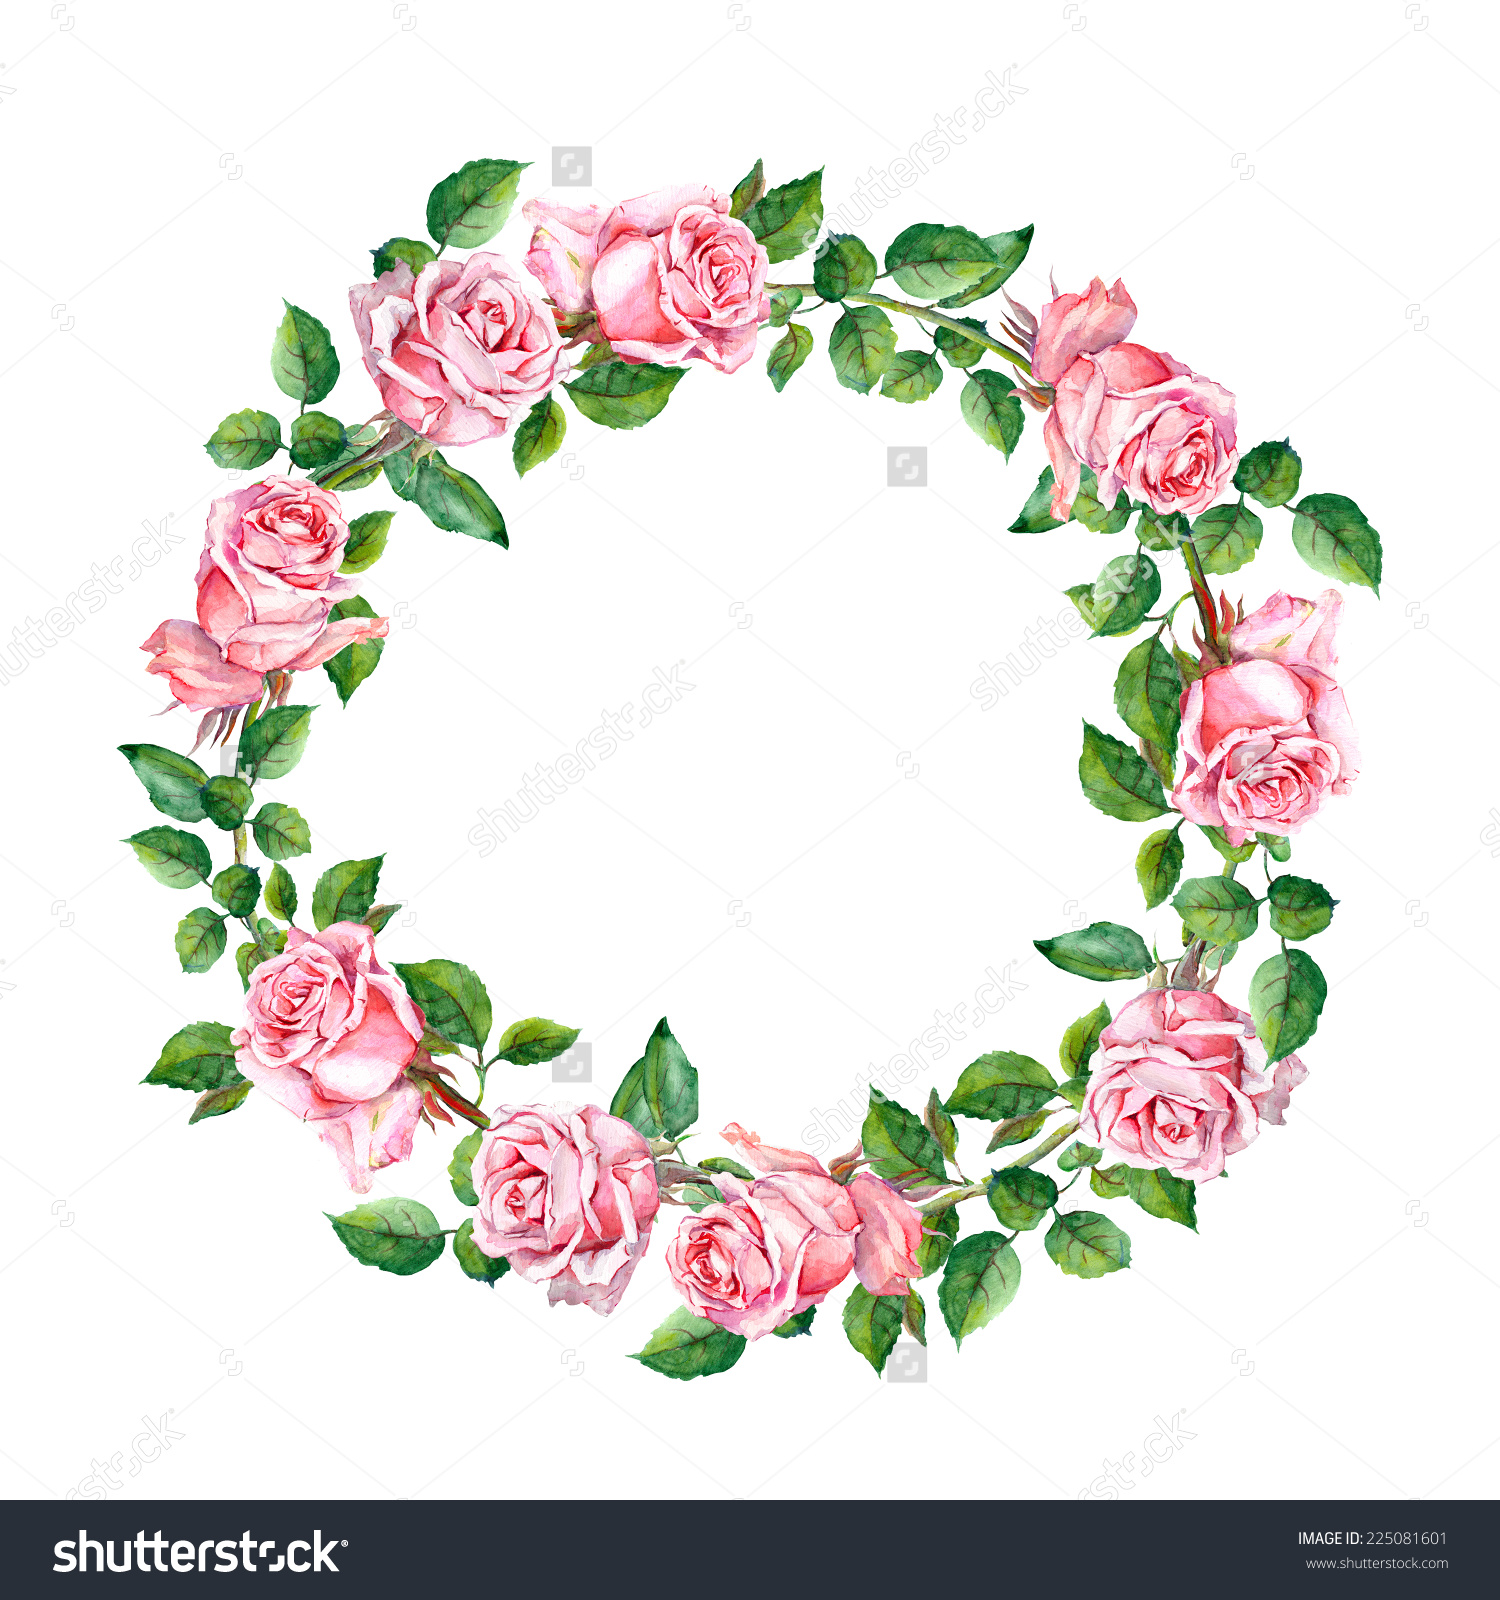 circle flower wreath clipart #4